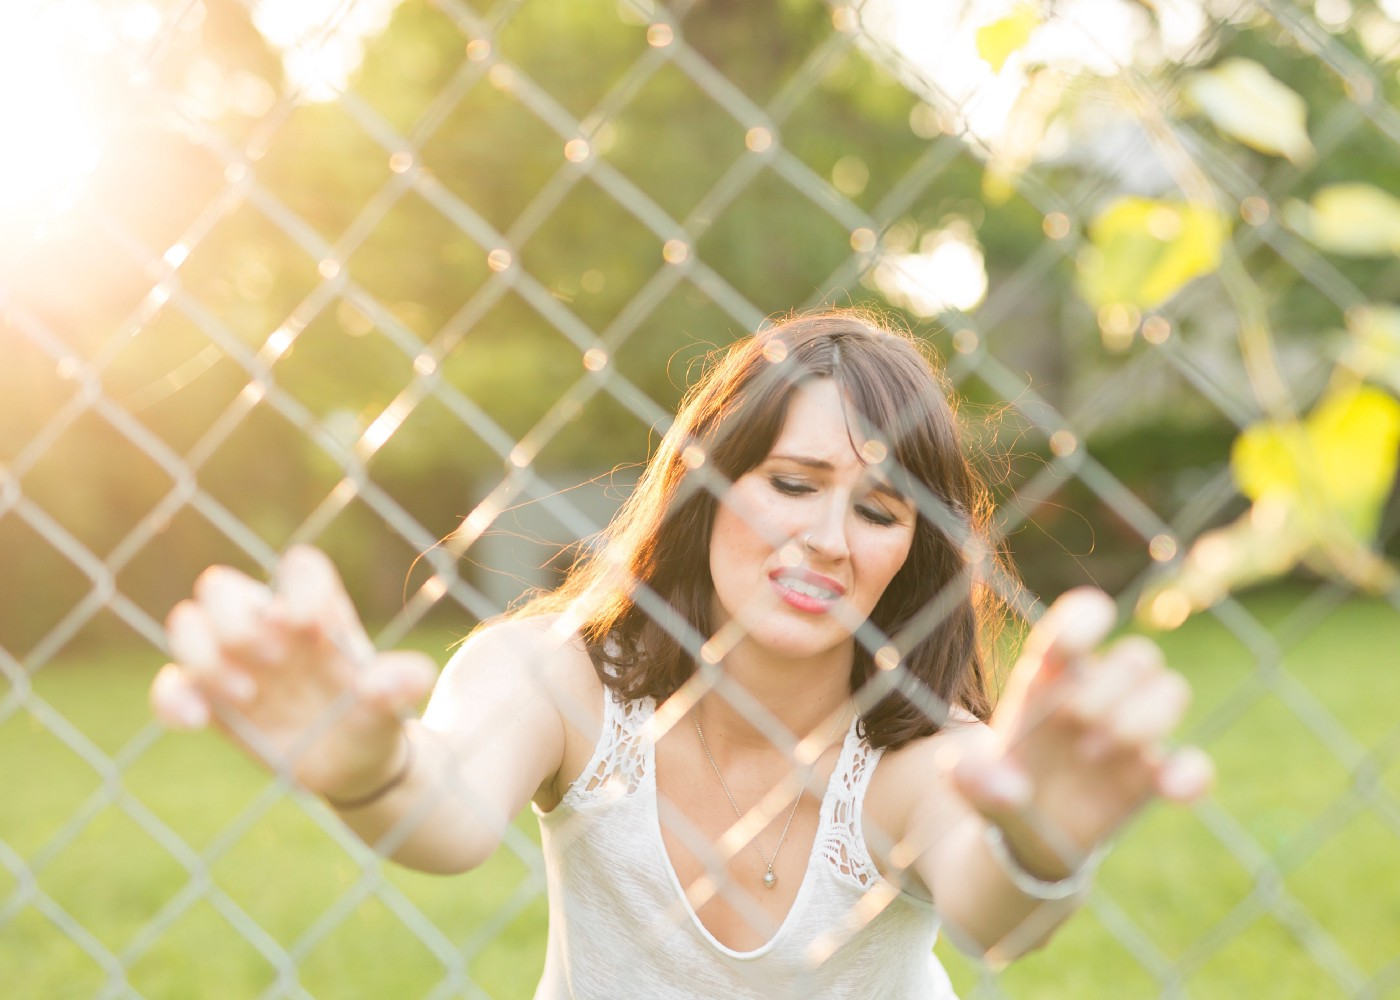 Woman looking frustrated holding on to a chain link fence.